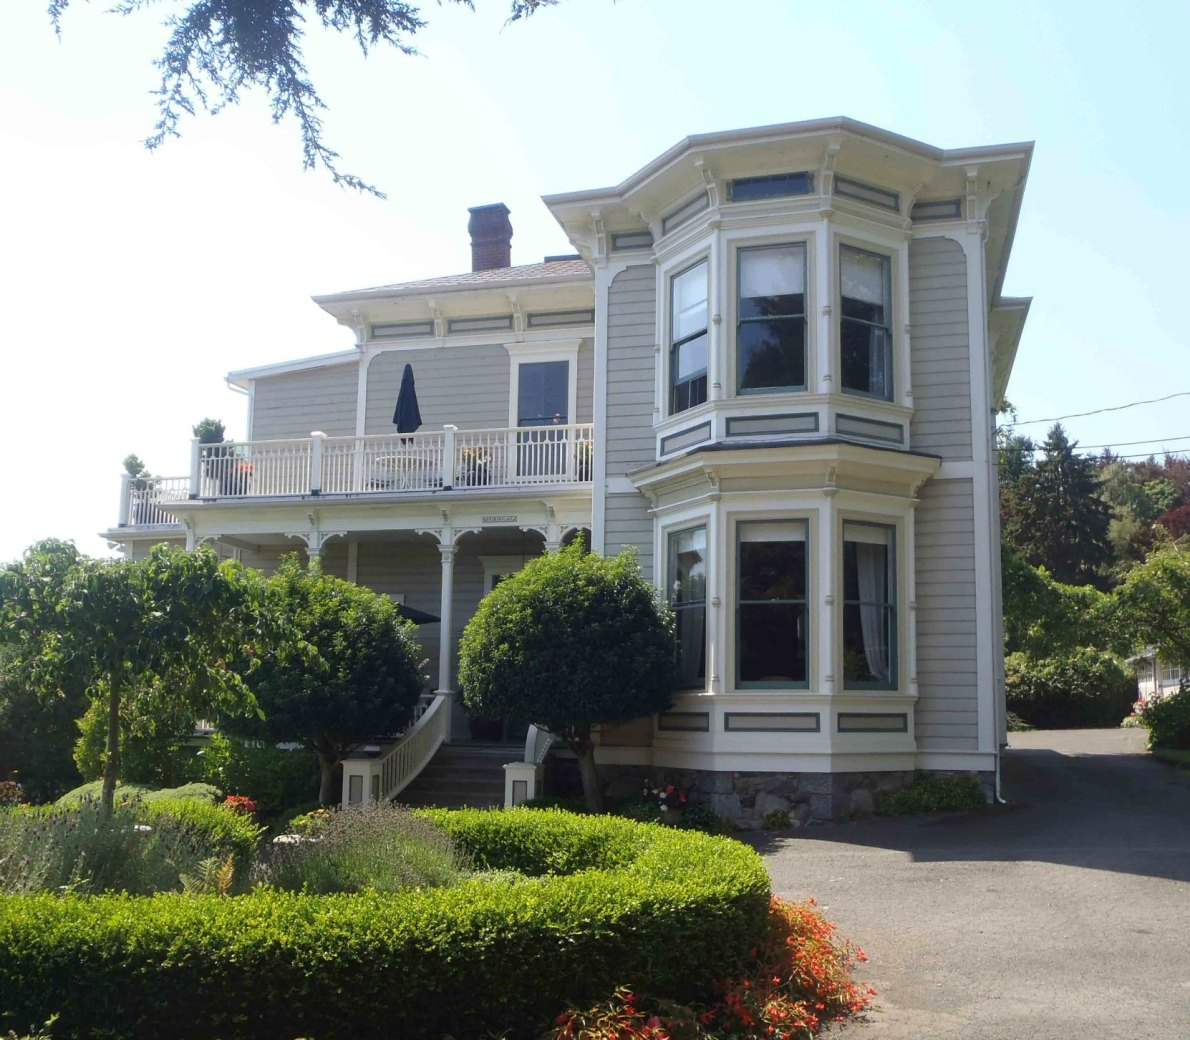 638 Rockland Place, Fairholme. Built in 1885 for Dr. John Chapman Davie (photo by Victoria Online Sightseeing)